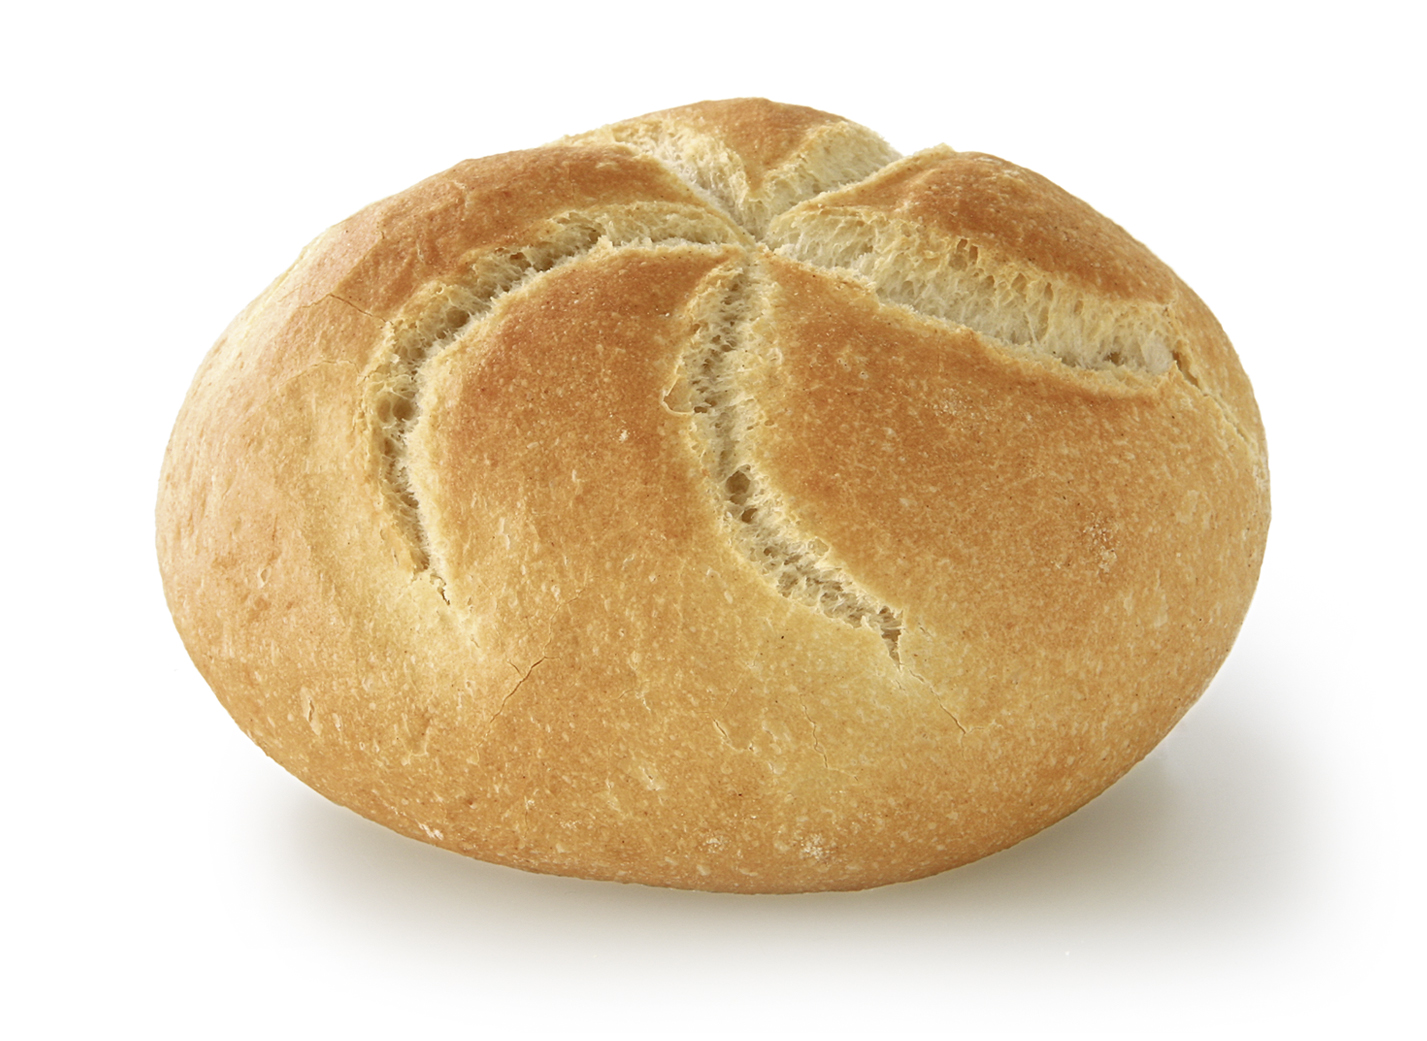 Kaiser Roll - Small wheat bakery round/ with typical look